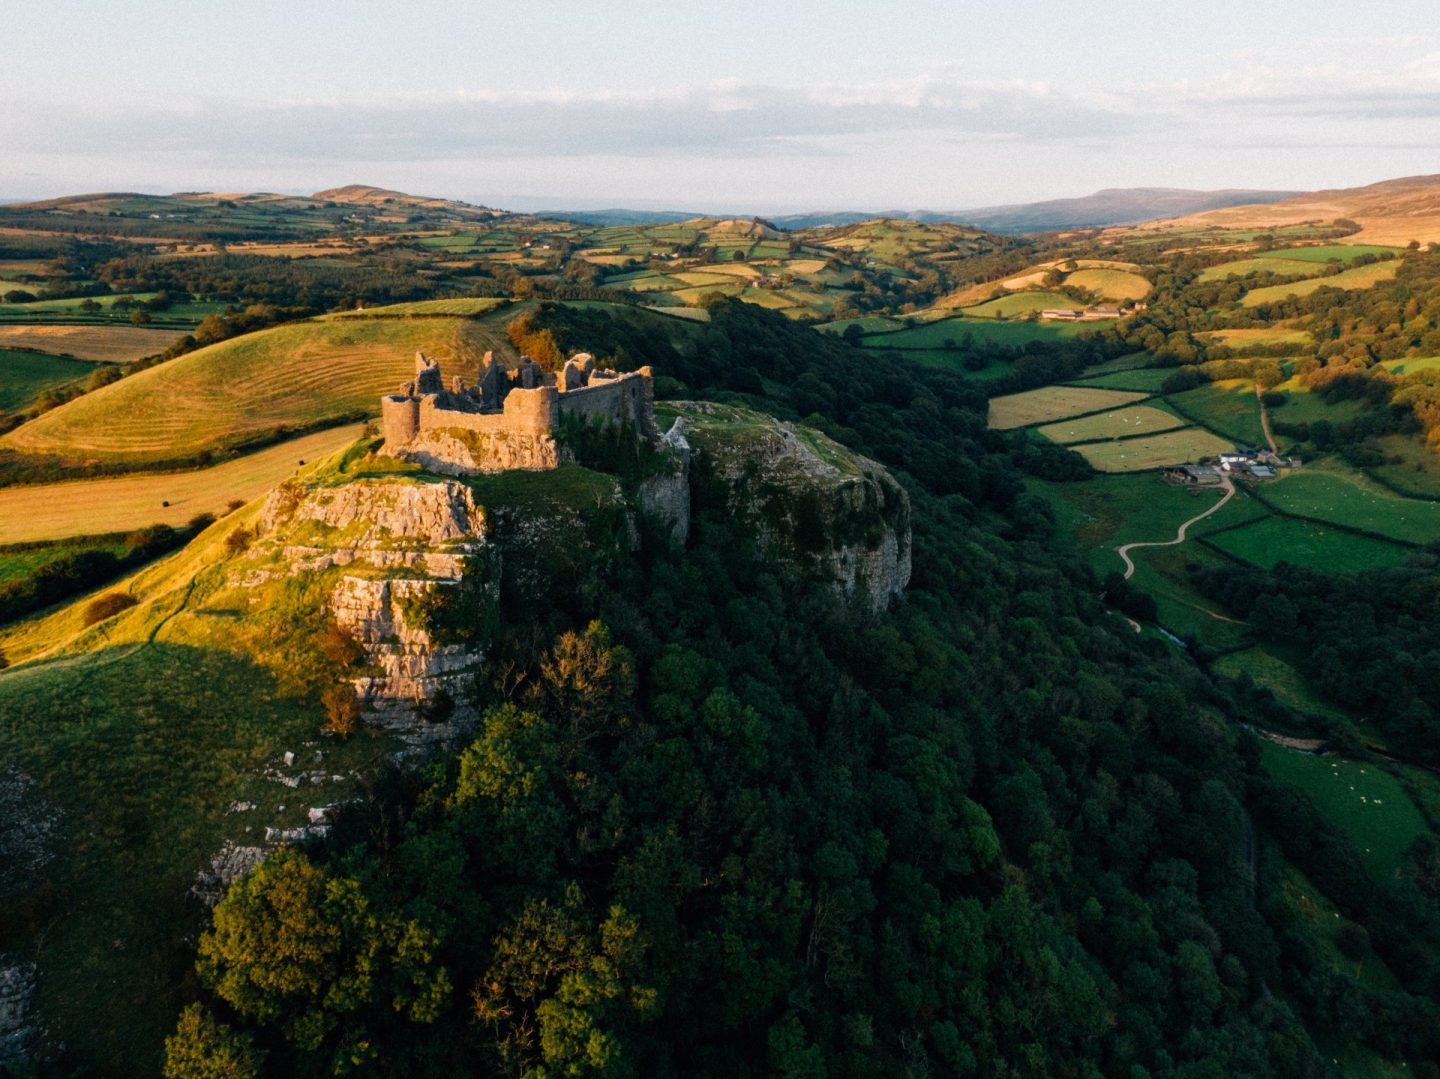 a castles on a hill surrounded by green rolling hills in Wales.